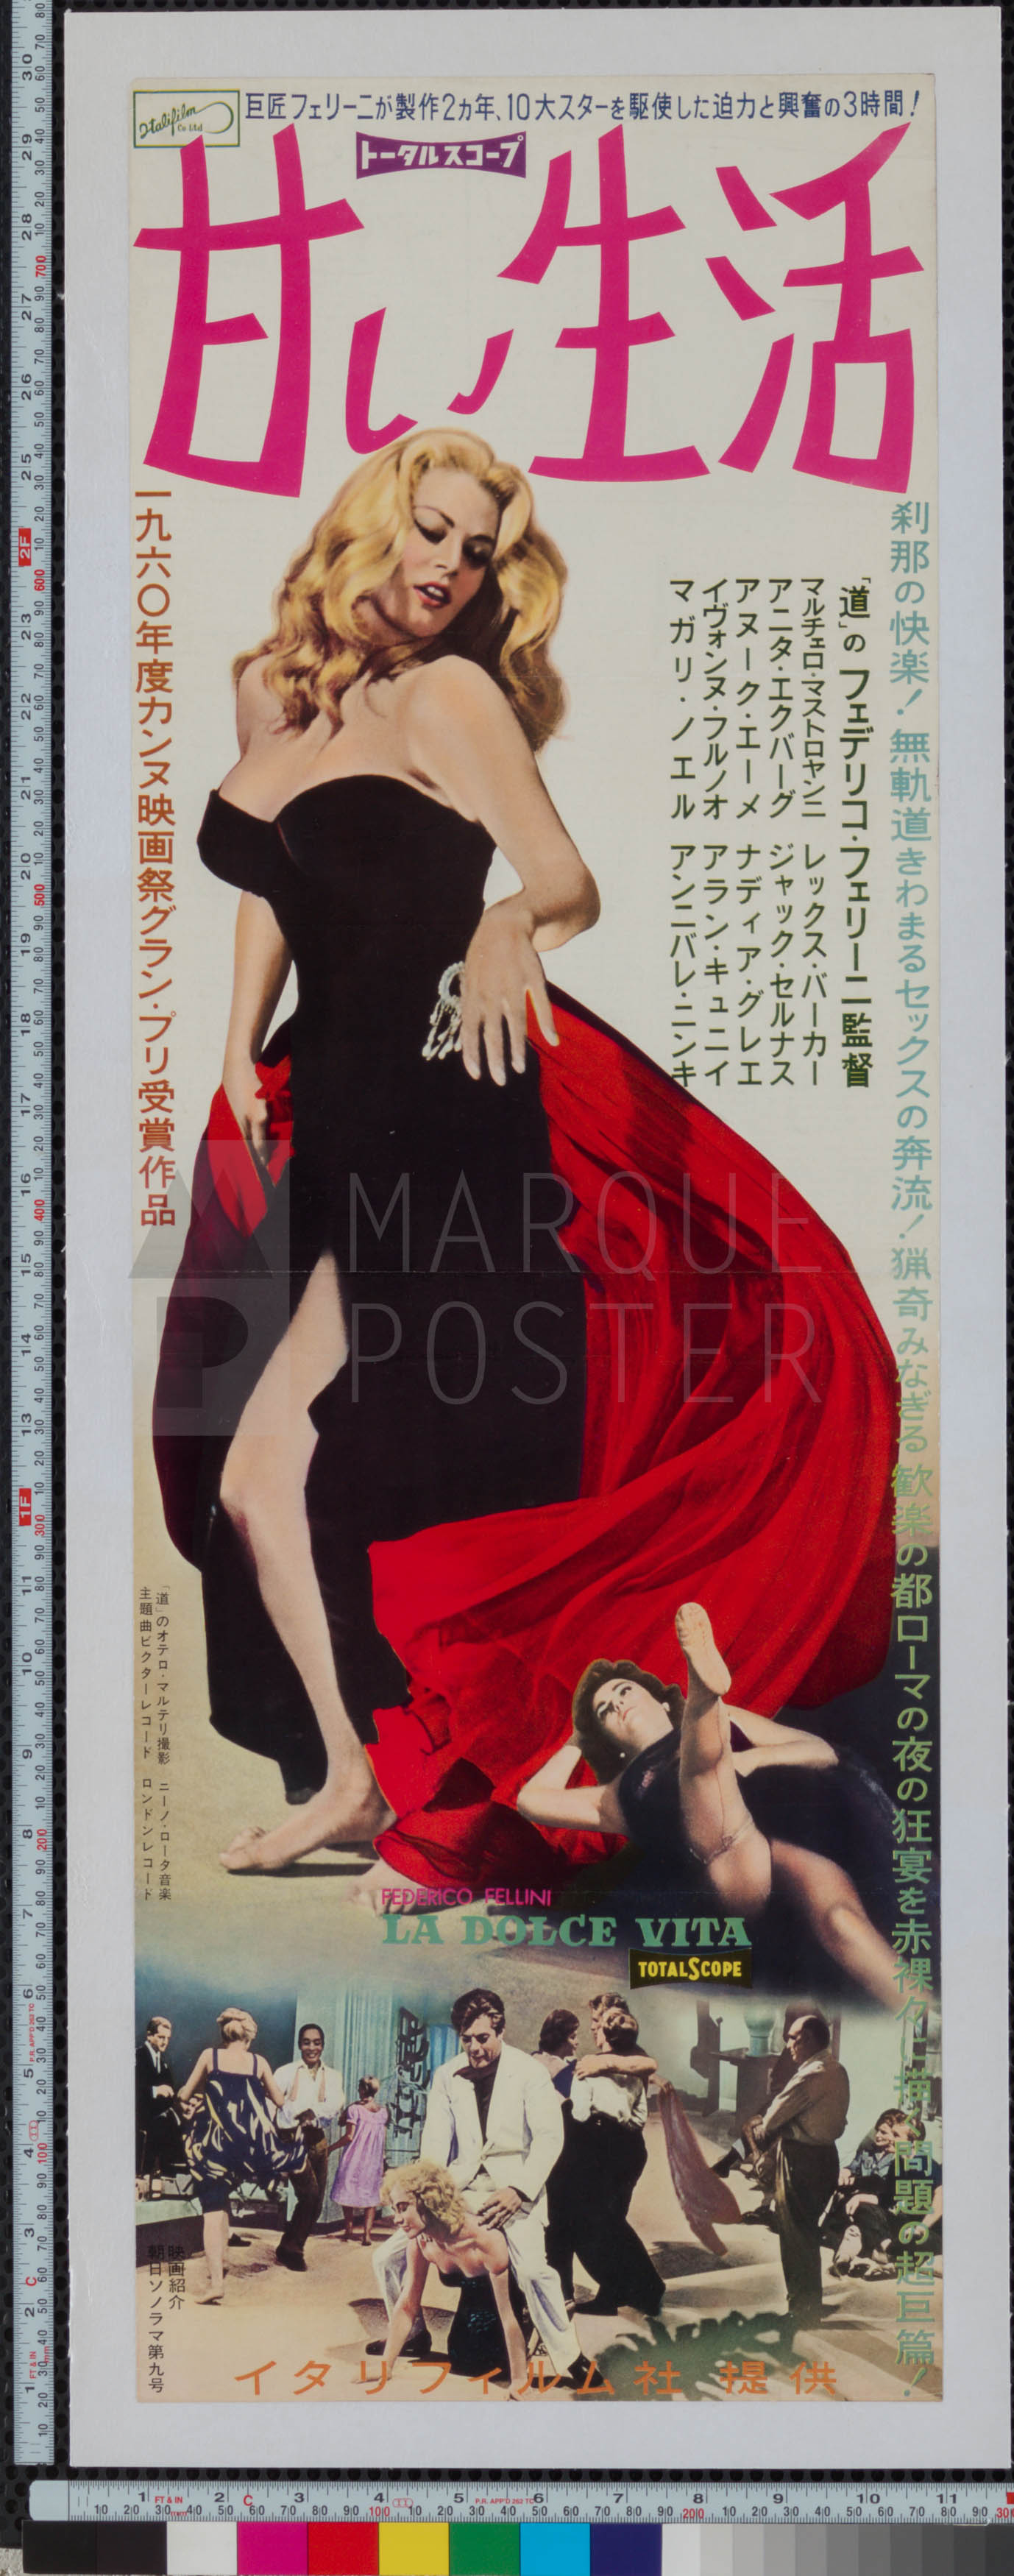 26-la-dolce-vita-press-japanese-speed-1960-02